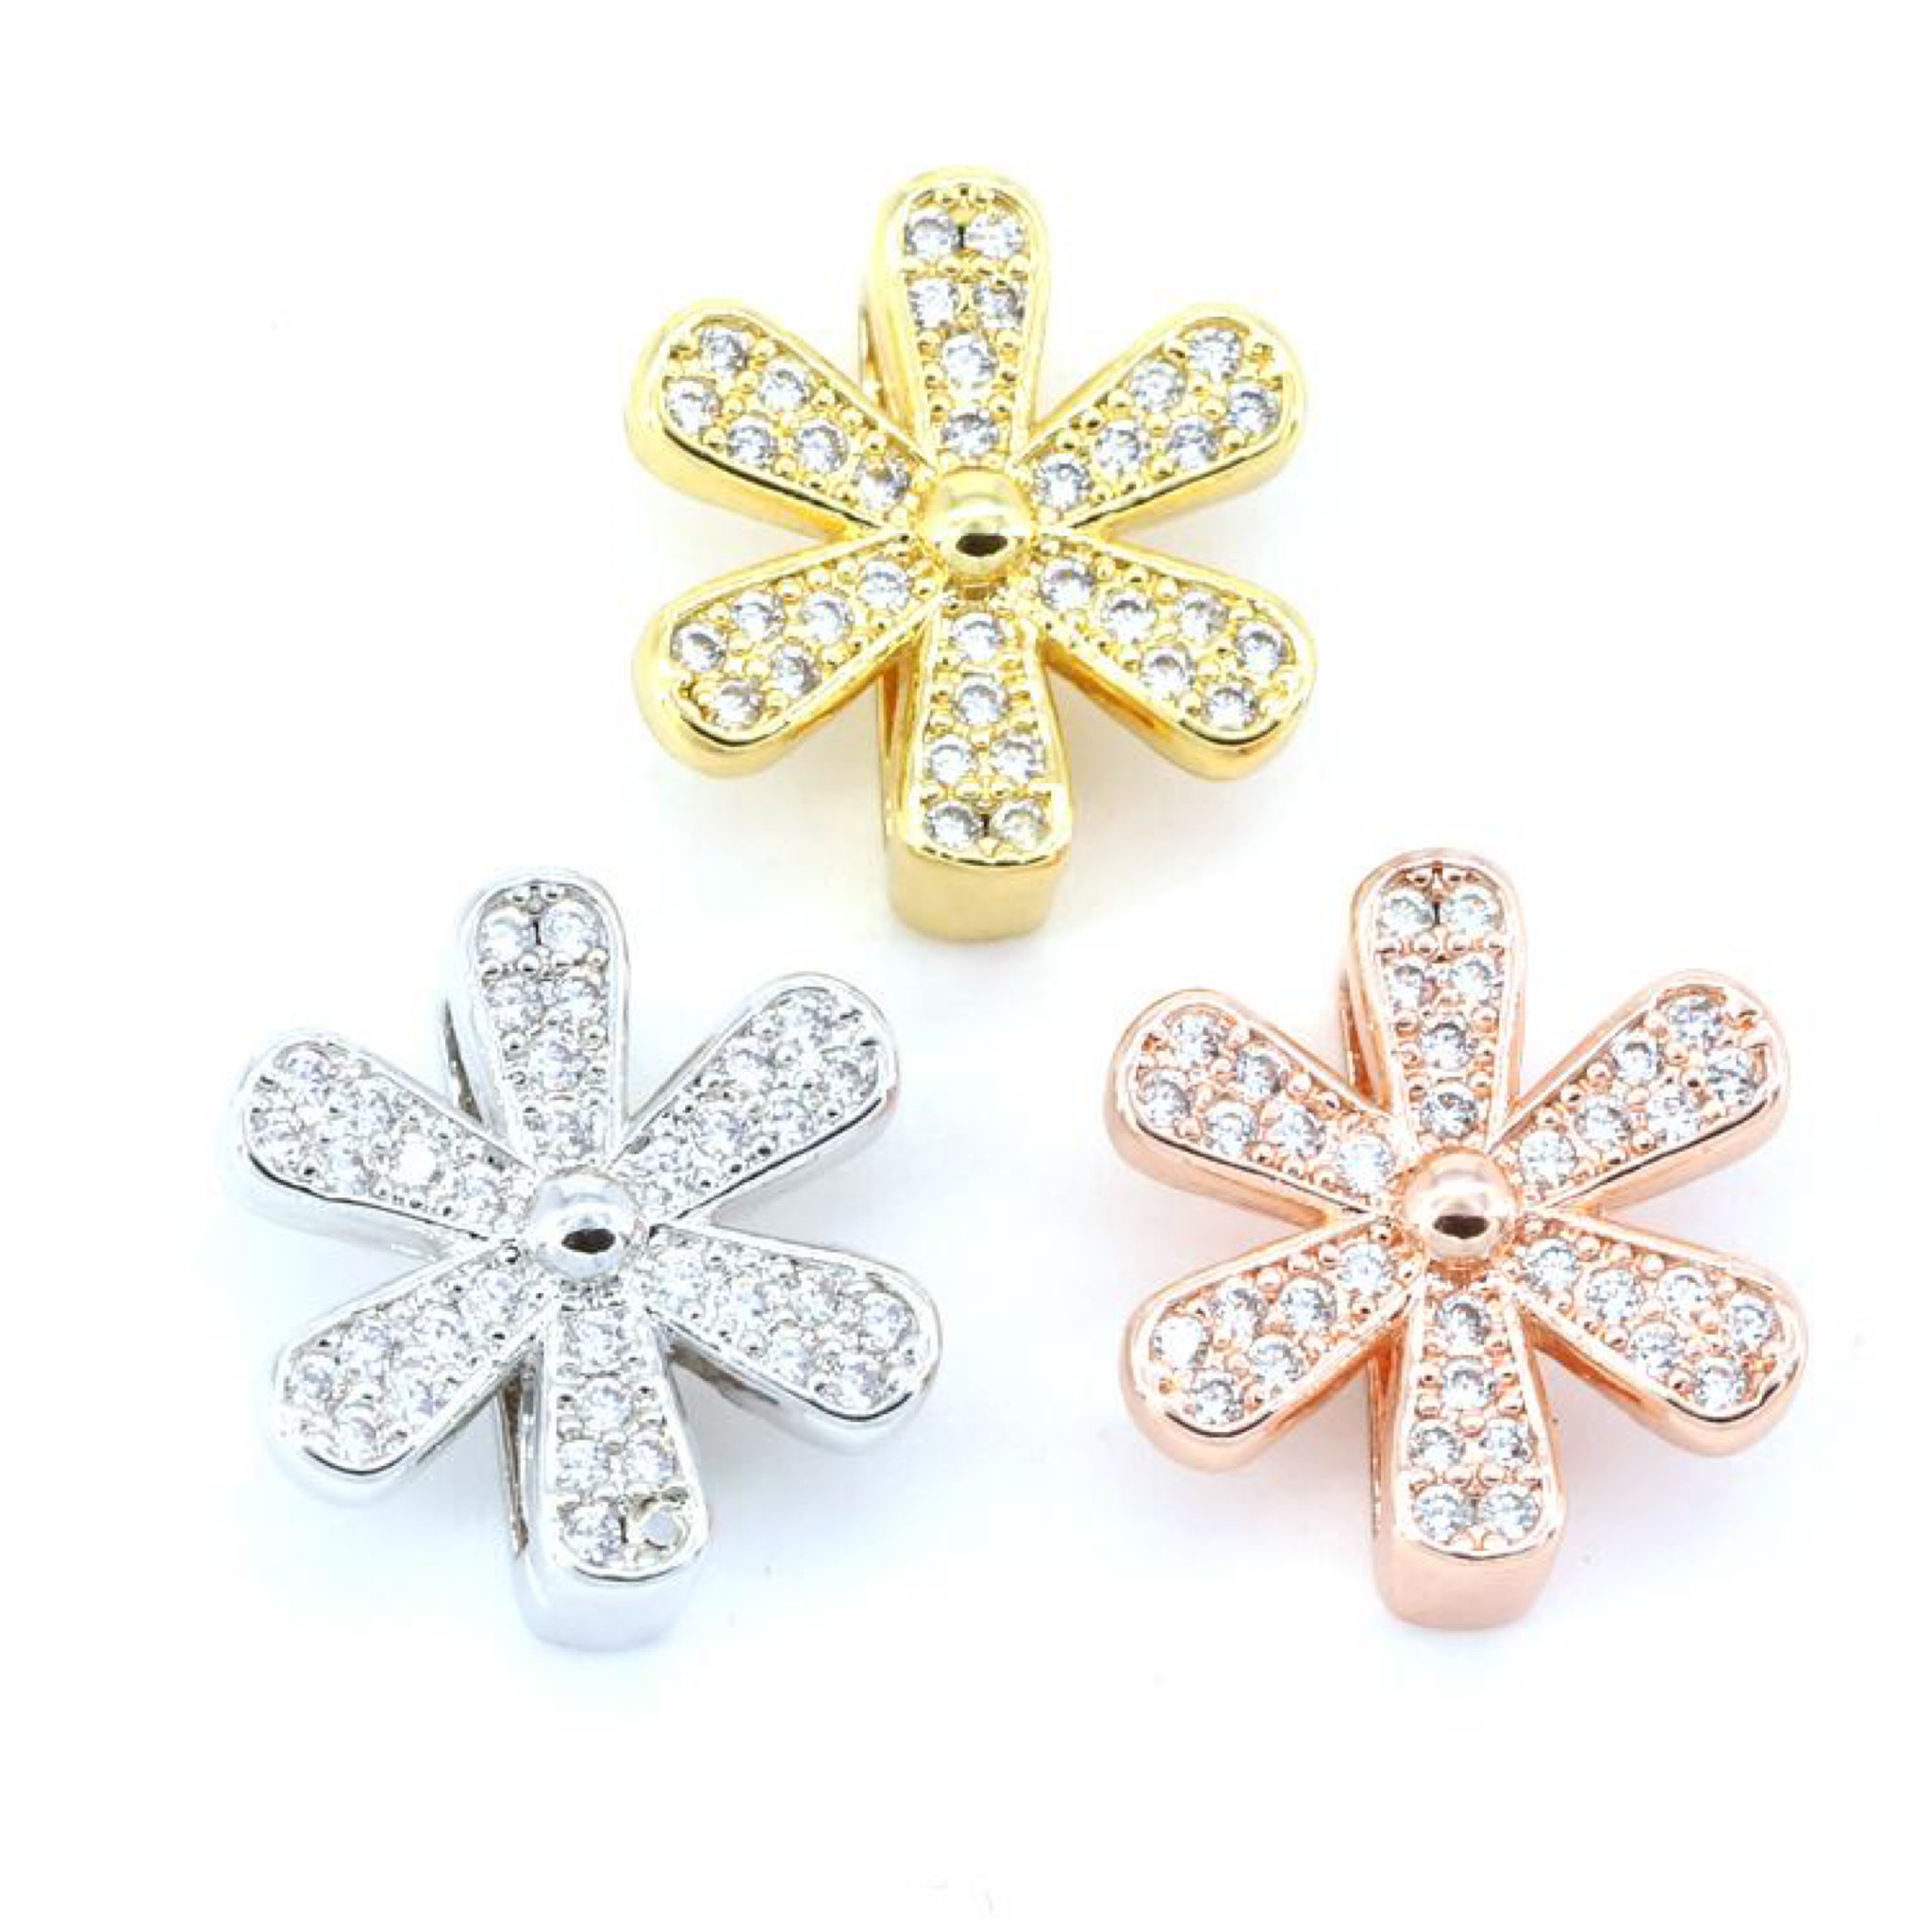 FLOWER CHARMS LIFE COLLECTION (4632214175819)